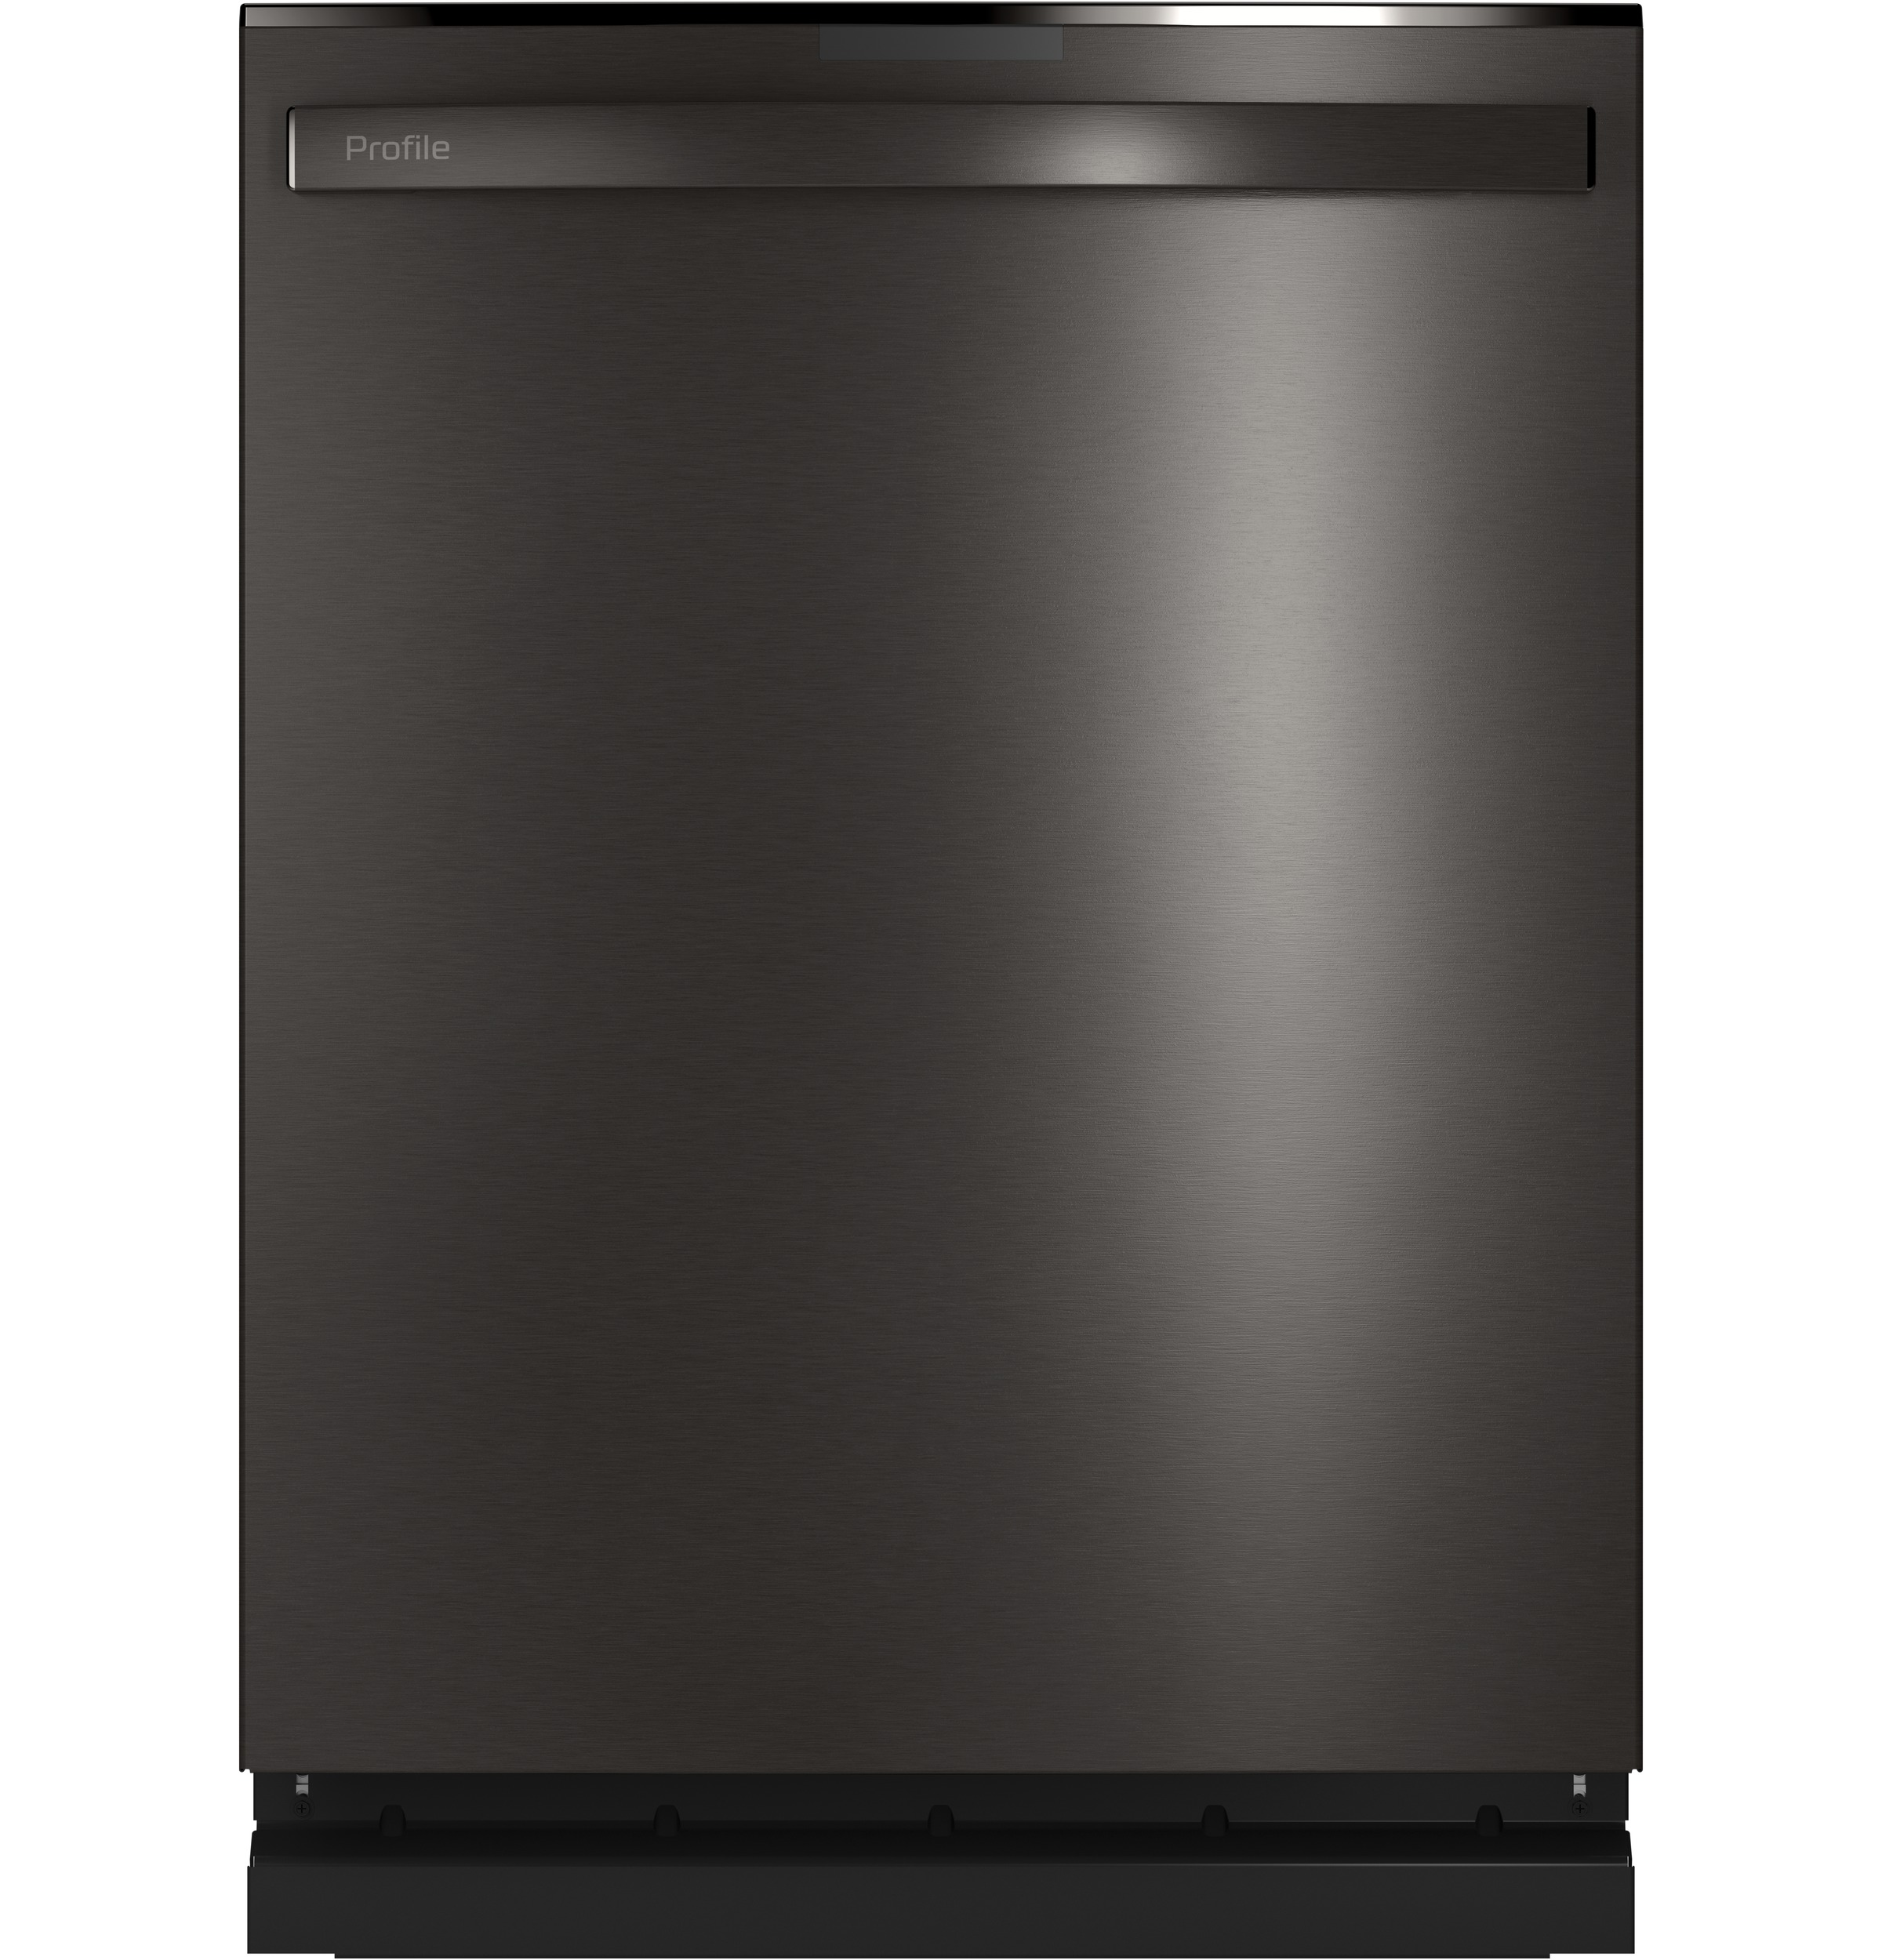 GE Profile GE Profile™ Top Control with Stainless Steel Interior Dishwasher with Sanitize Cycle & Twin Turbo Dry Boost